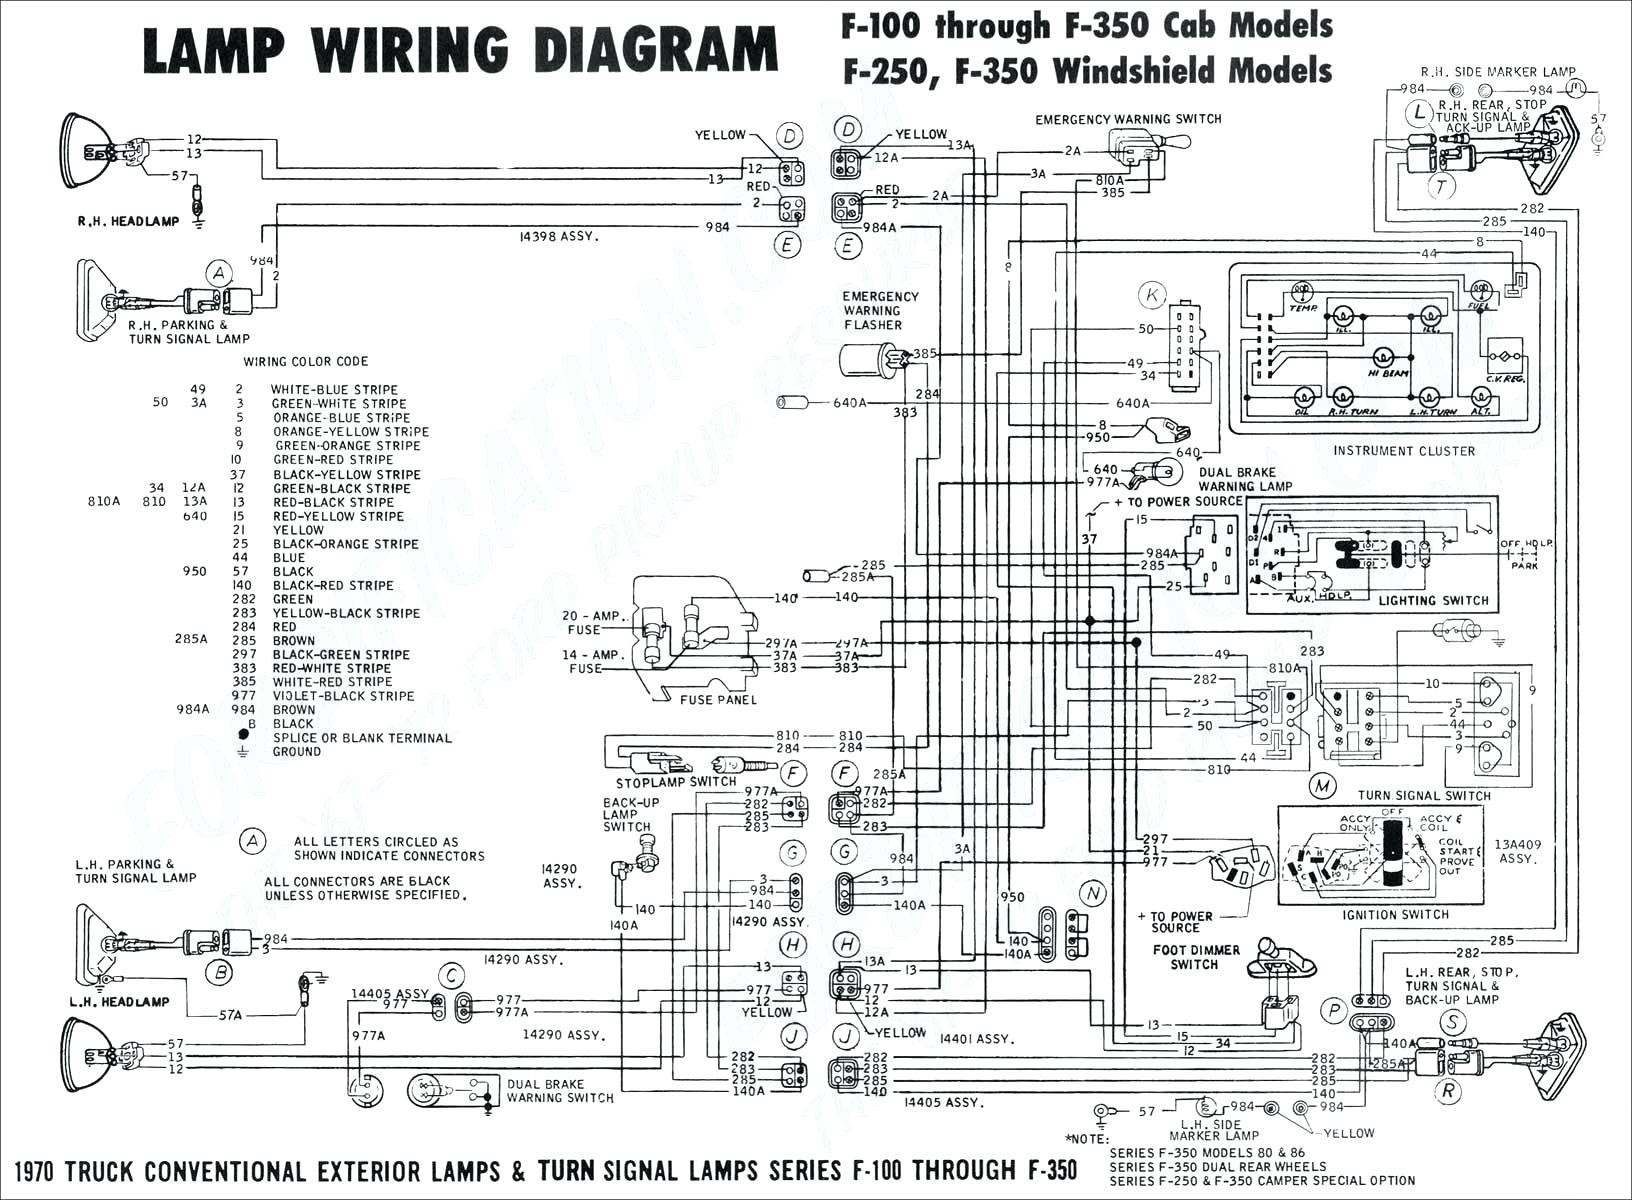 [DIAGRAM_3US]  EX_0747] Master Switch Wiring Diagram As Well Denso Alternator Wiring  Diagram Schematic Wiring | Denso 210 0406 Alternator Wiring Diagram |  | Bemua Tixat Trons Mohammedshrine Librar Wiring 101